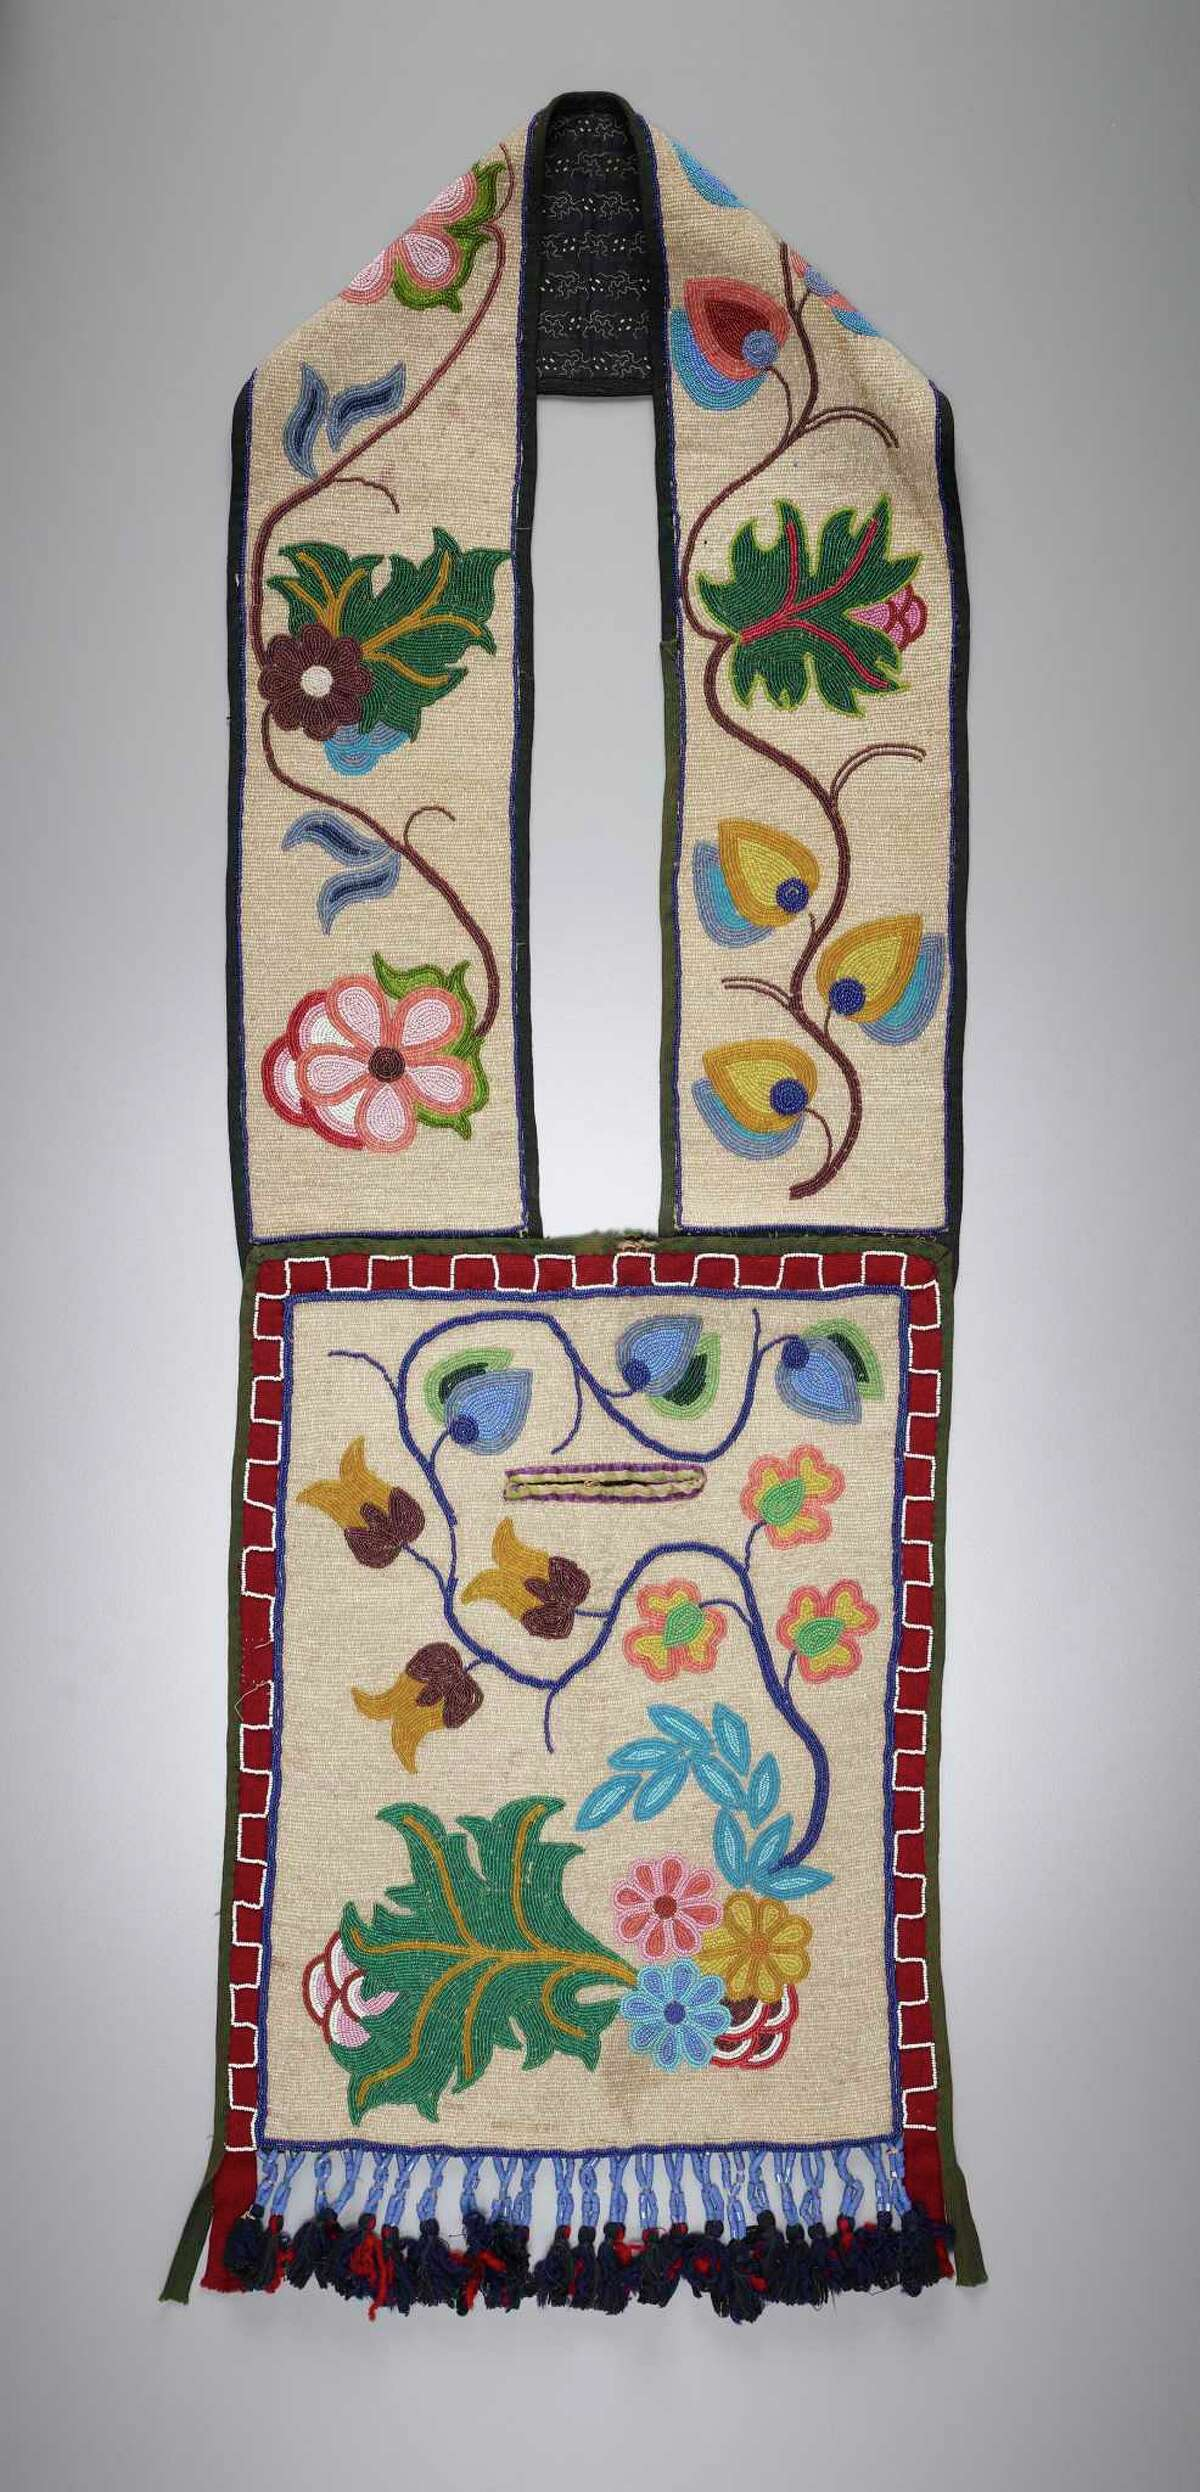 An Anishinaabe) artist's Aazhooningwa'on (Bandolier Bag), ca. early 20th century. Wool, glass beads, and cotton.